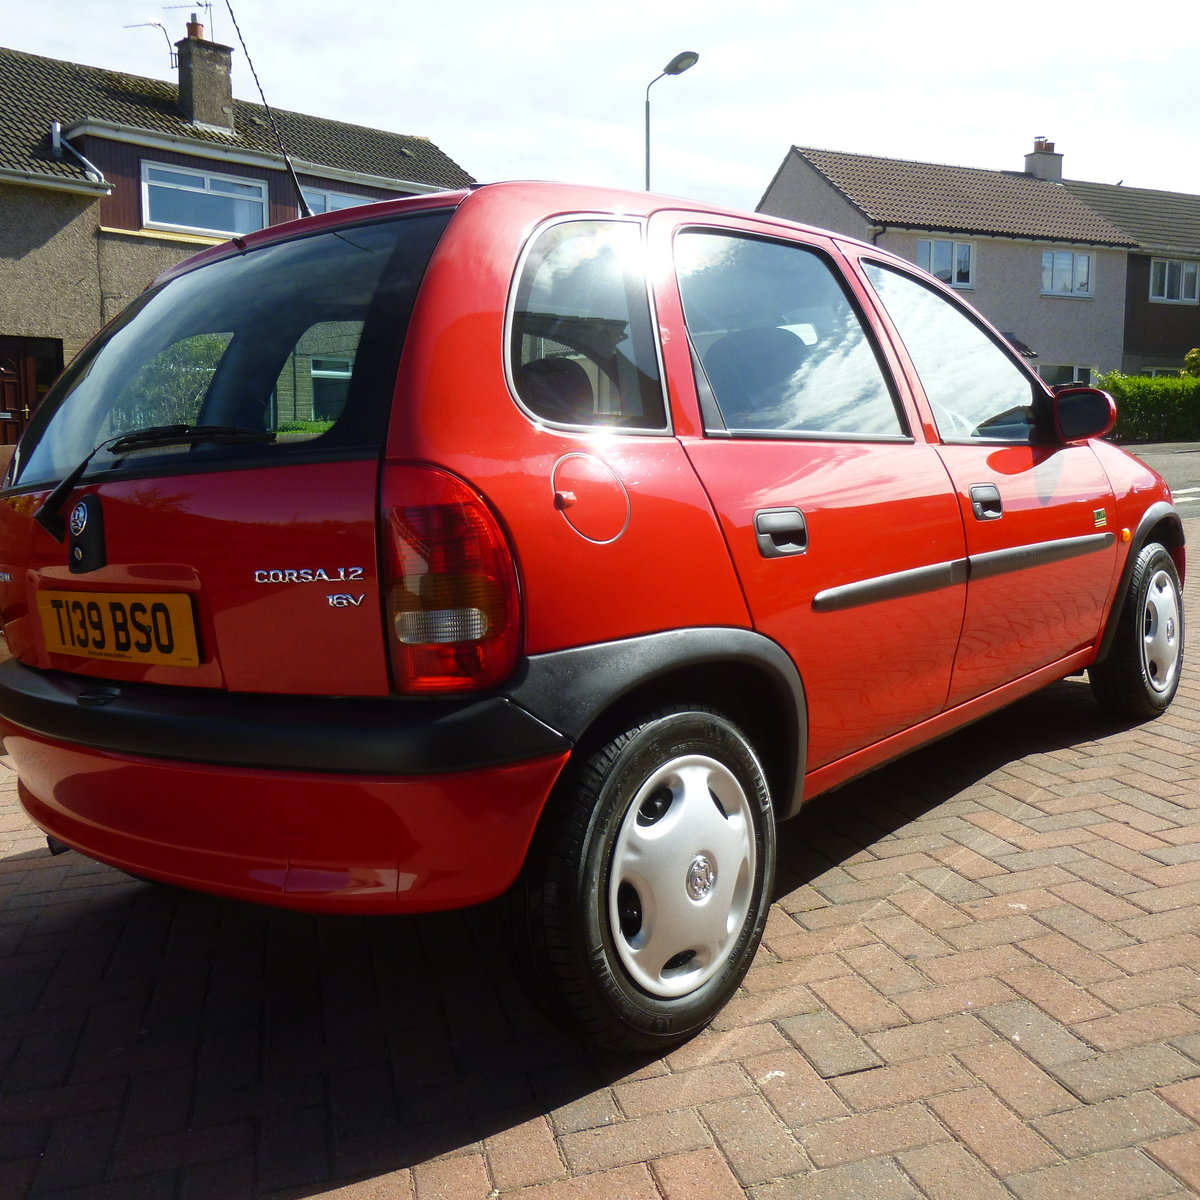 1999 Vauxhall Corsa 1.2 Breeze Only 6,862 miles SOLD (picture 2 of 6)